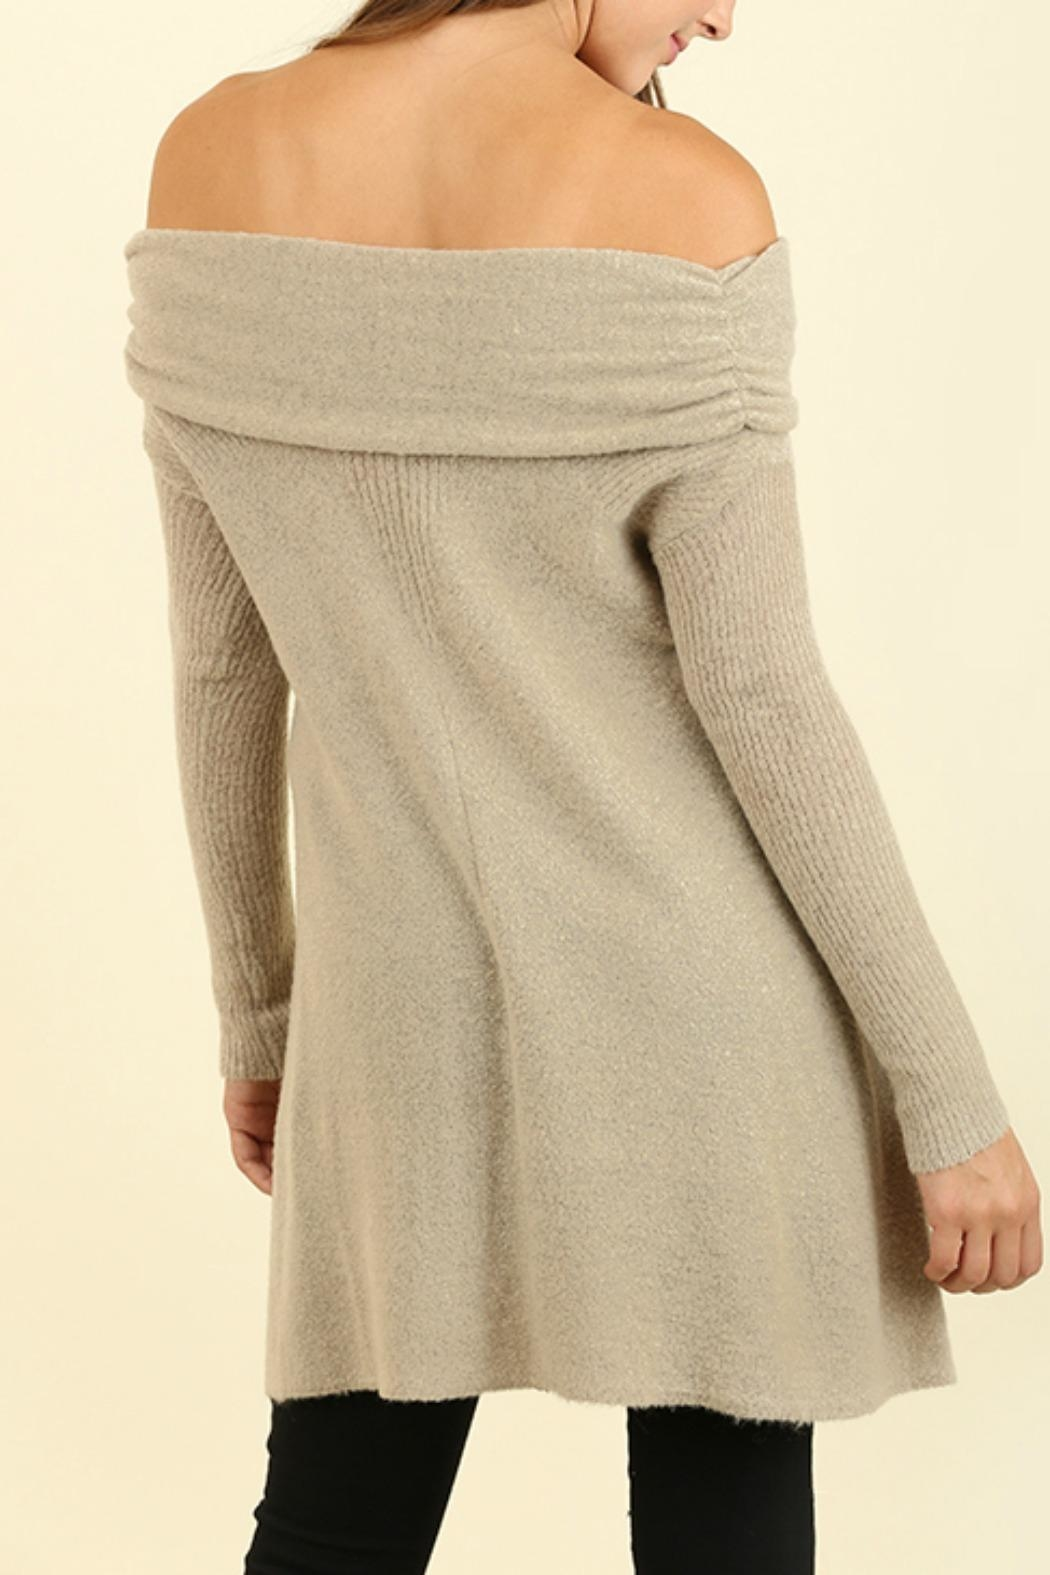 Umgee USA Off the Shoulder Sweater - Side Cropped Image